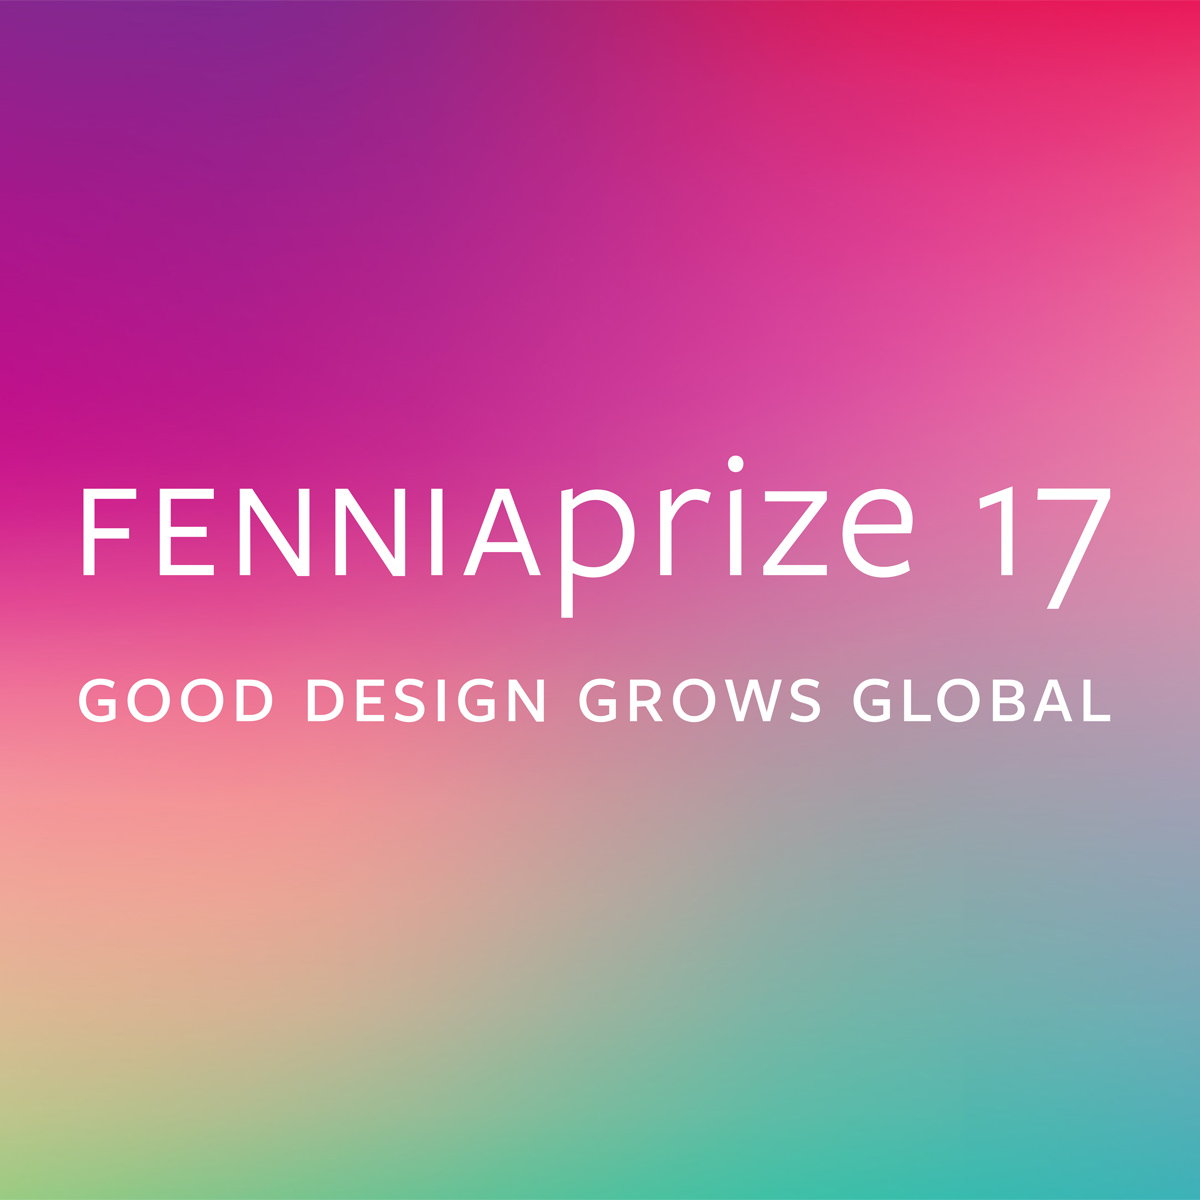 Fennia Prize 2017 - Good Design Grows Global